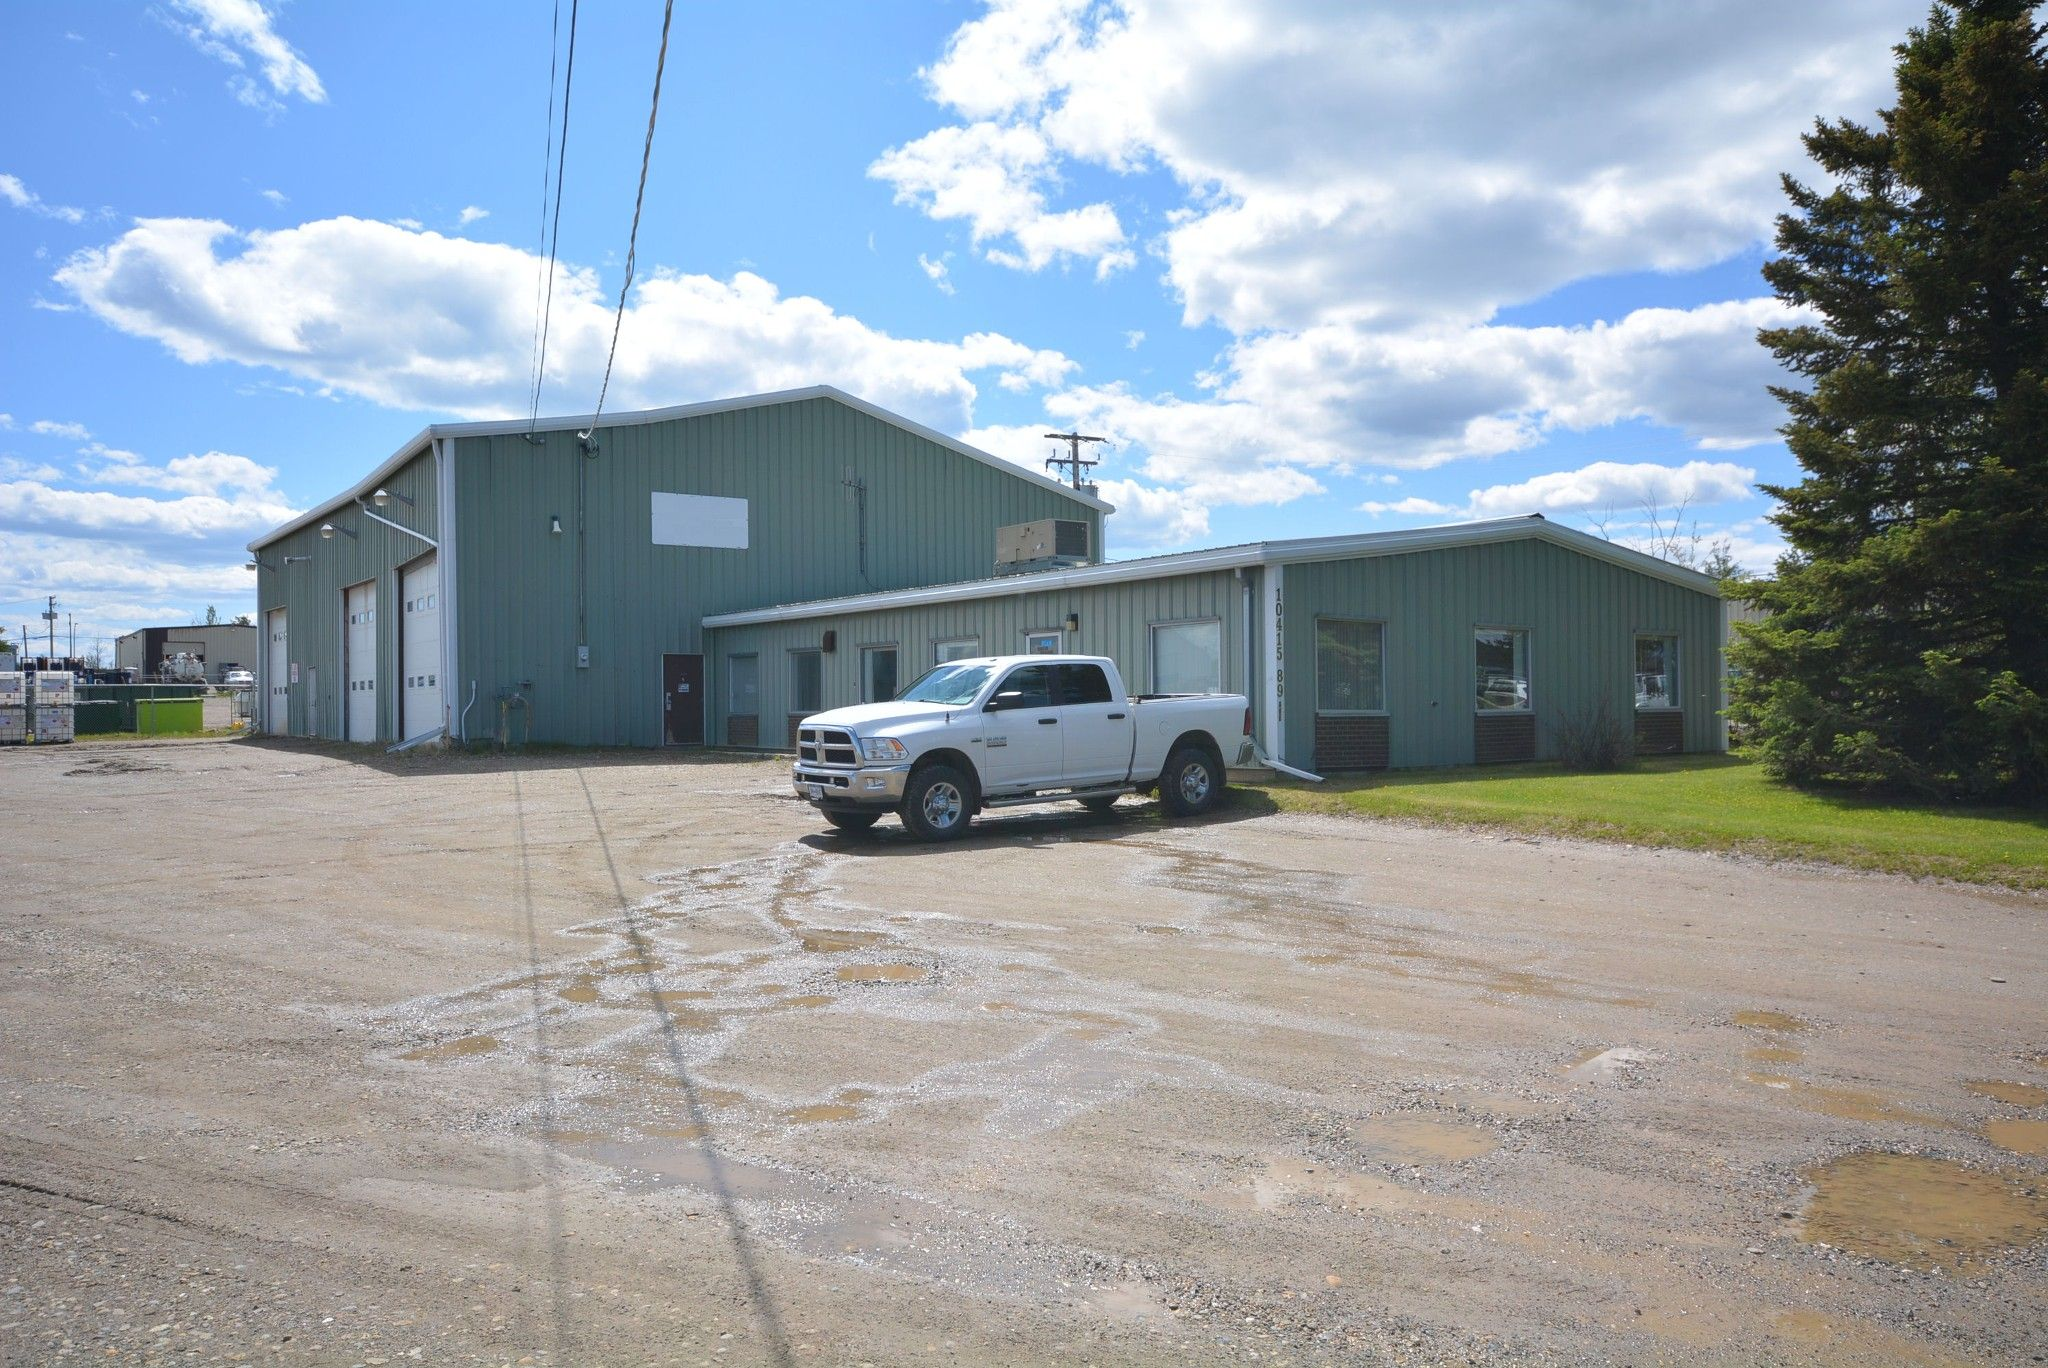 Main Photo: 10415 89 Avenue in Fort St. John: Fort St. John - City SW Industrial for sale (Fort St. John (Zone 60))